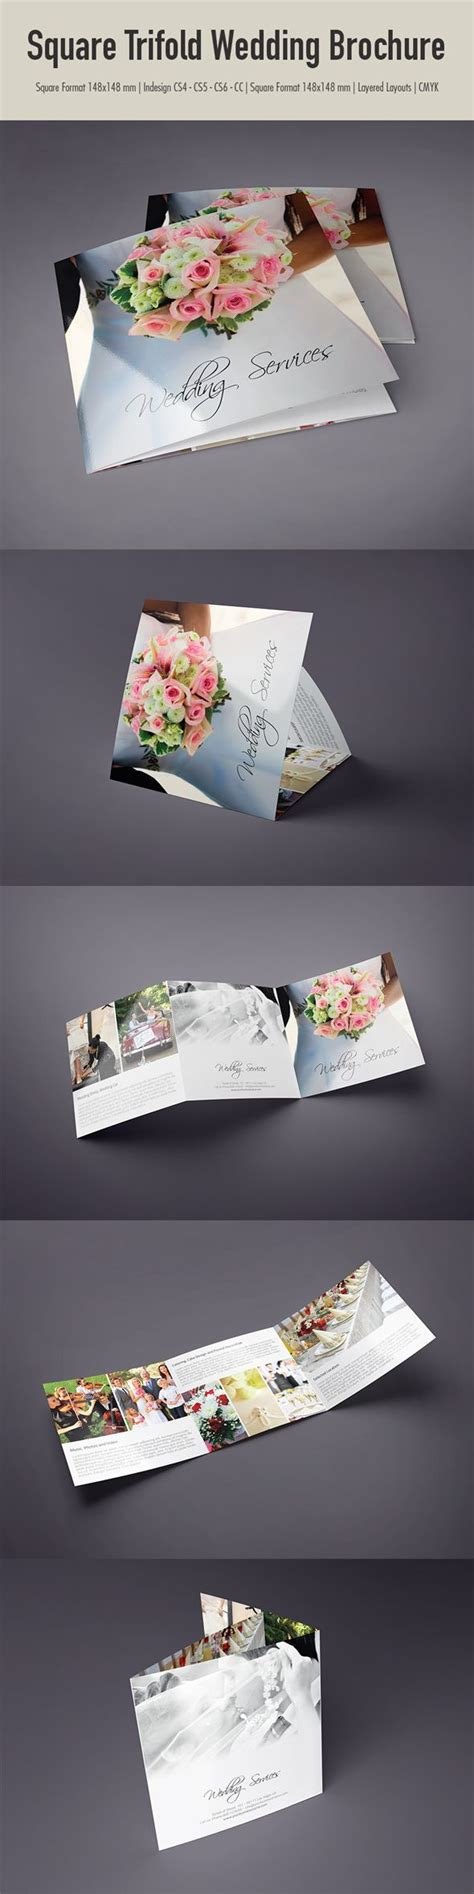 Trifold Template Album Ideas by 25 Best Ideas About Wedding Brochure On Pinterest